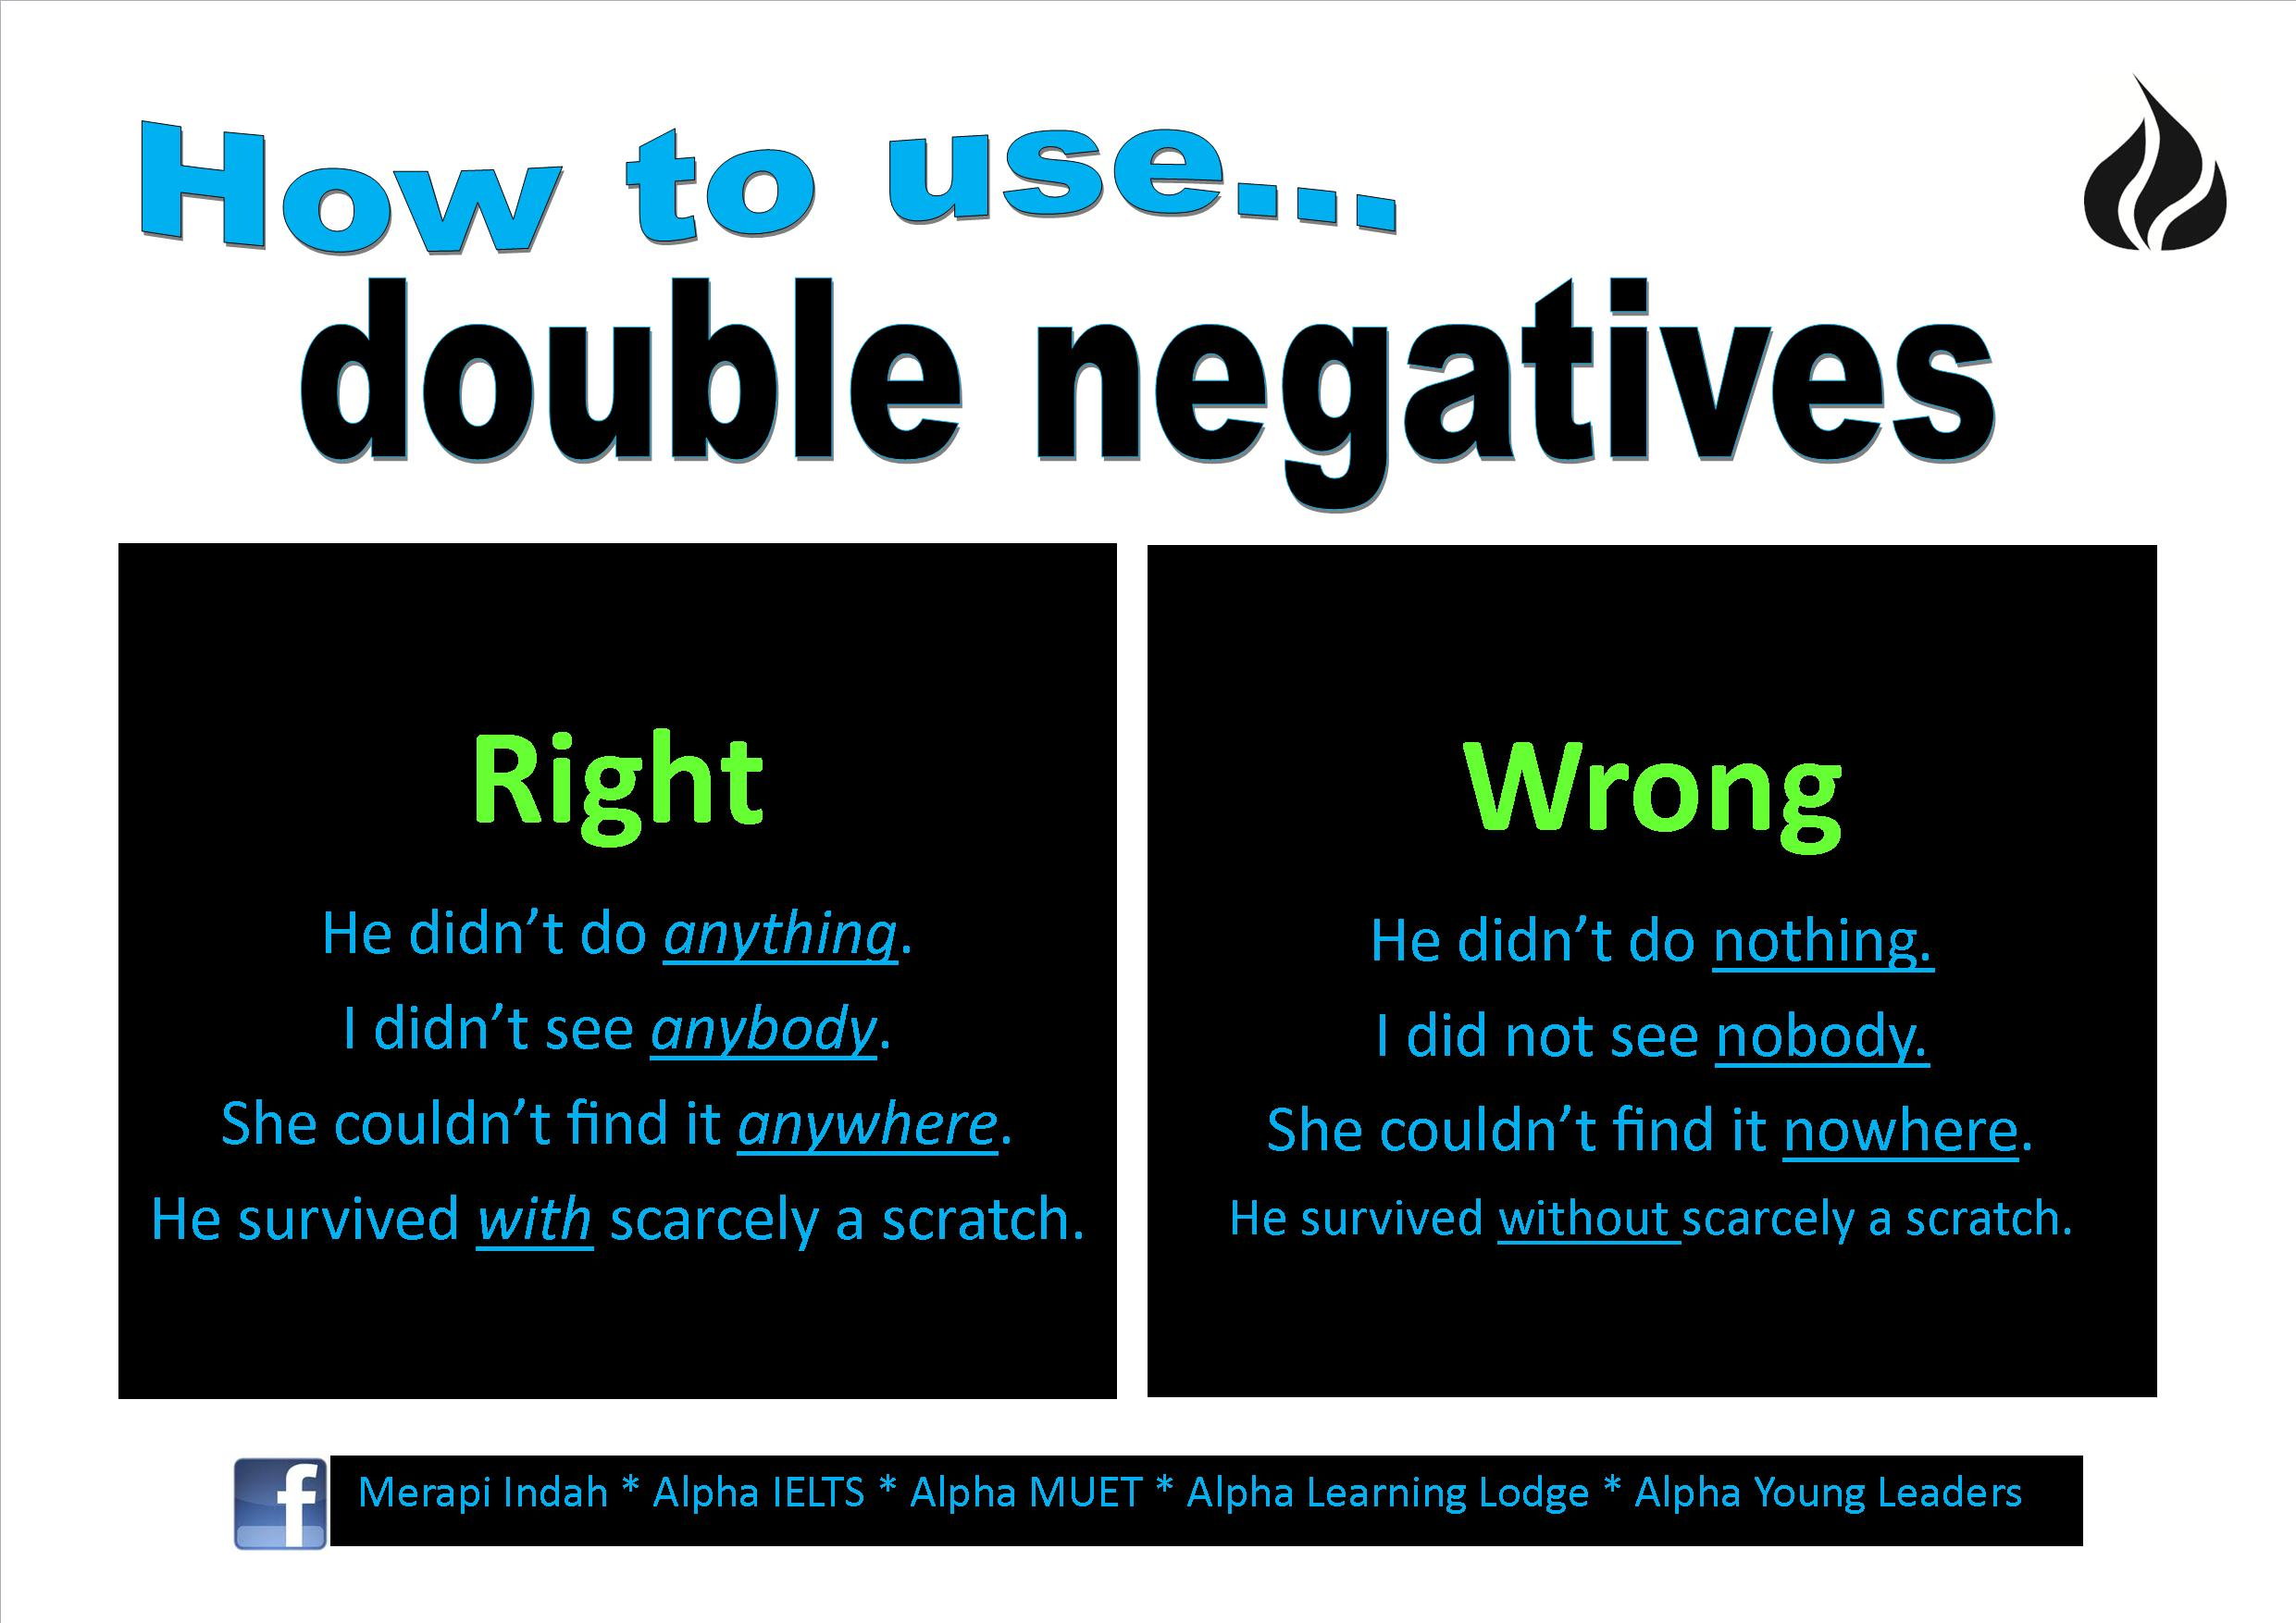 How To Use Double Negatives